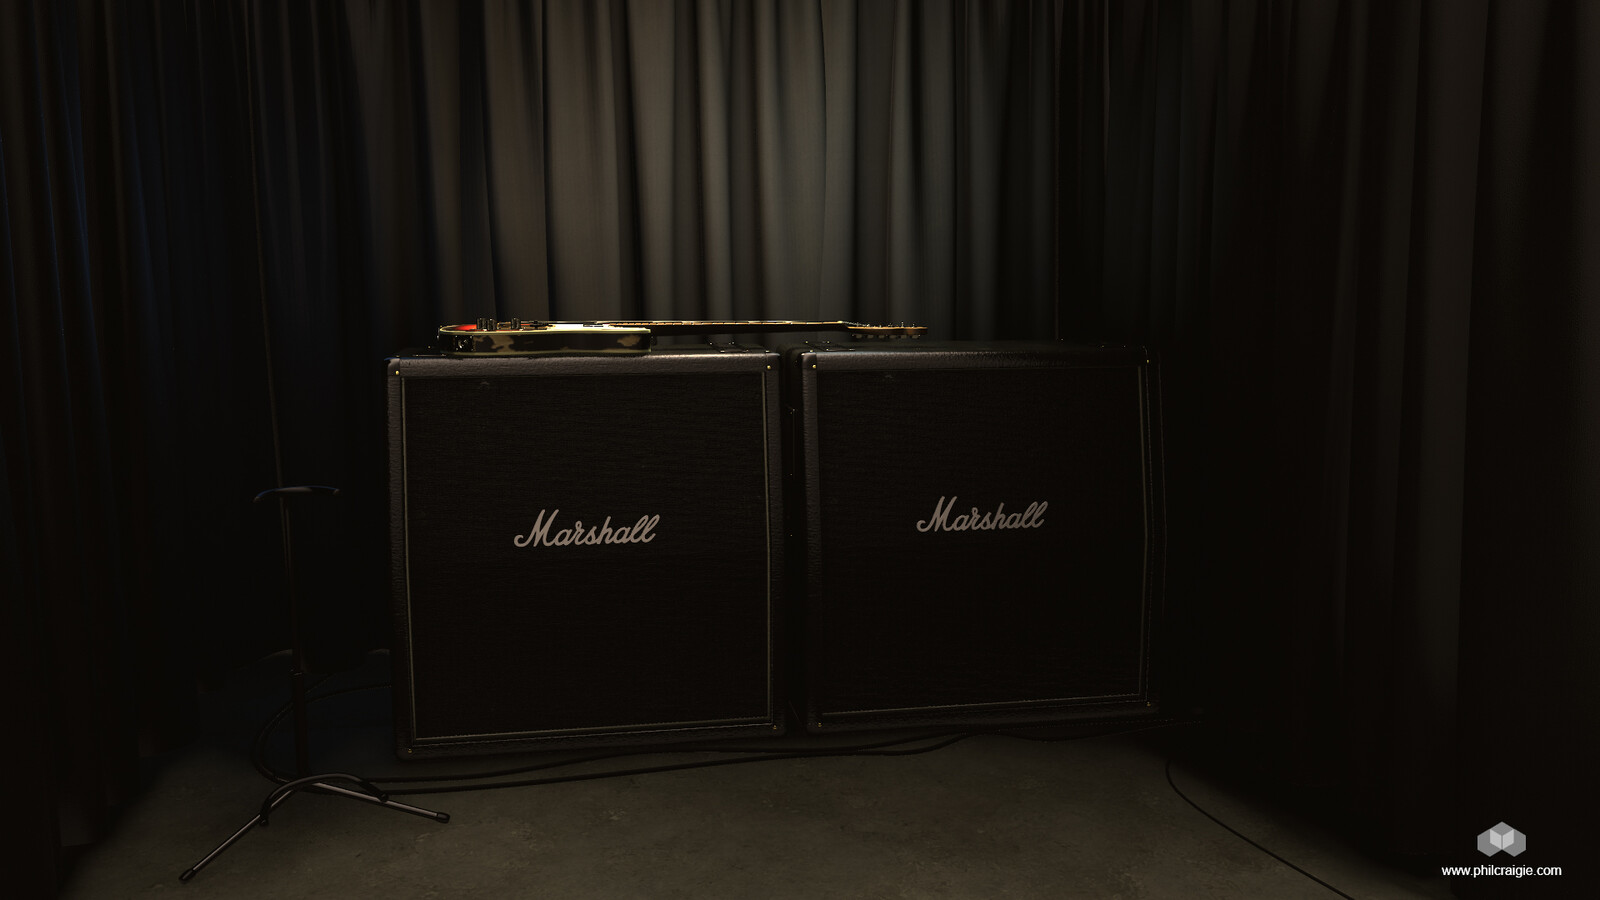 The Studio setup for the renders. This shows the other props I created. Curtains, Speakers cabinets, guitar stand and floor.  The Marshall speaker cabinets tiling materials (vinyl covering and speaker cloth) were created in Substance Alchemist.